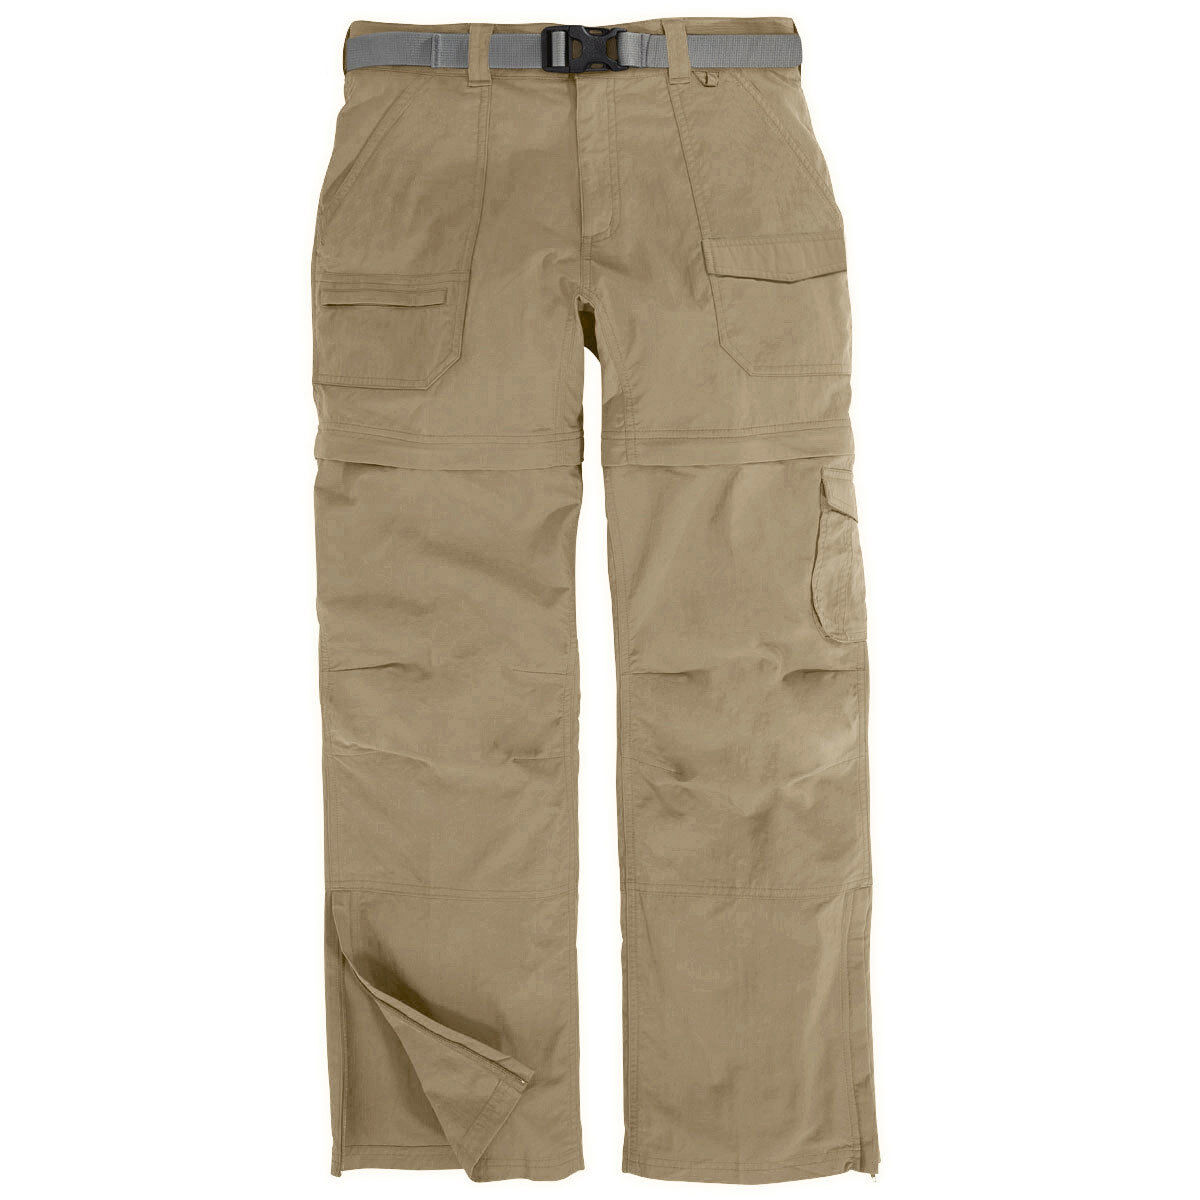 Ems Women's Camp Cargo Zip-Off Pants - Brown, 0/R